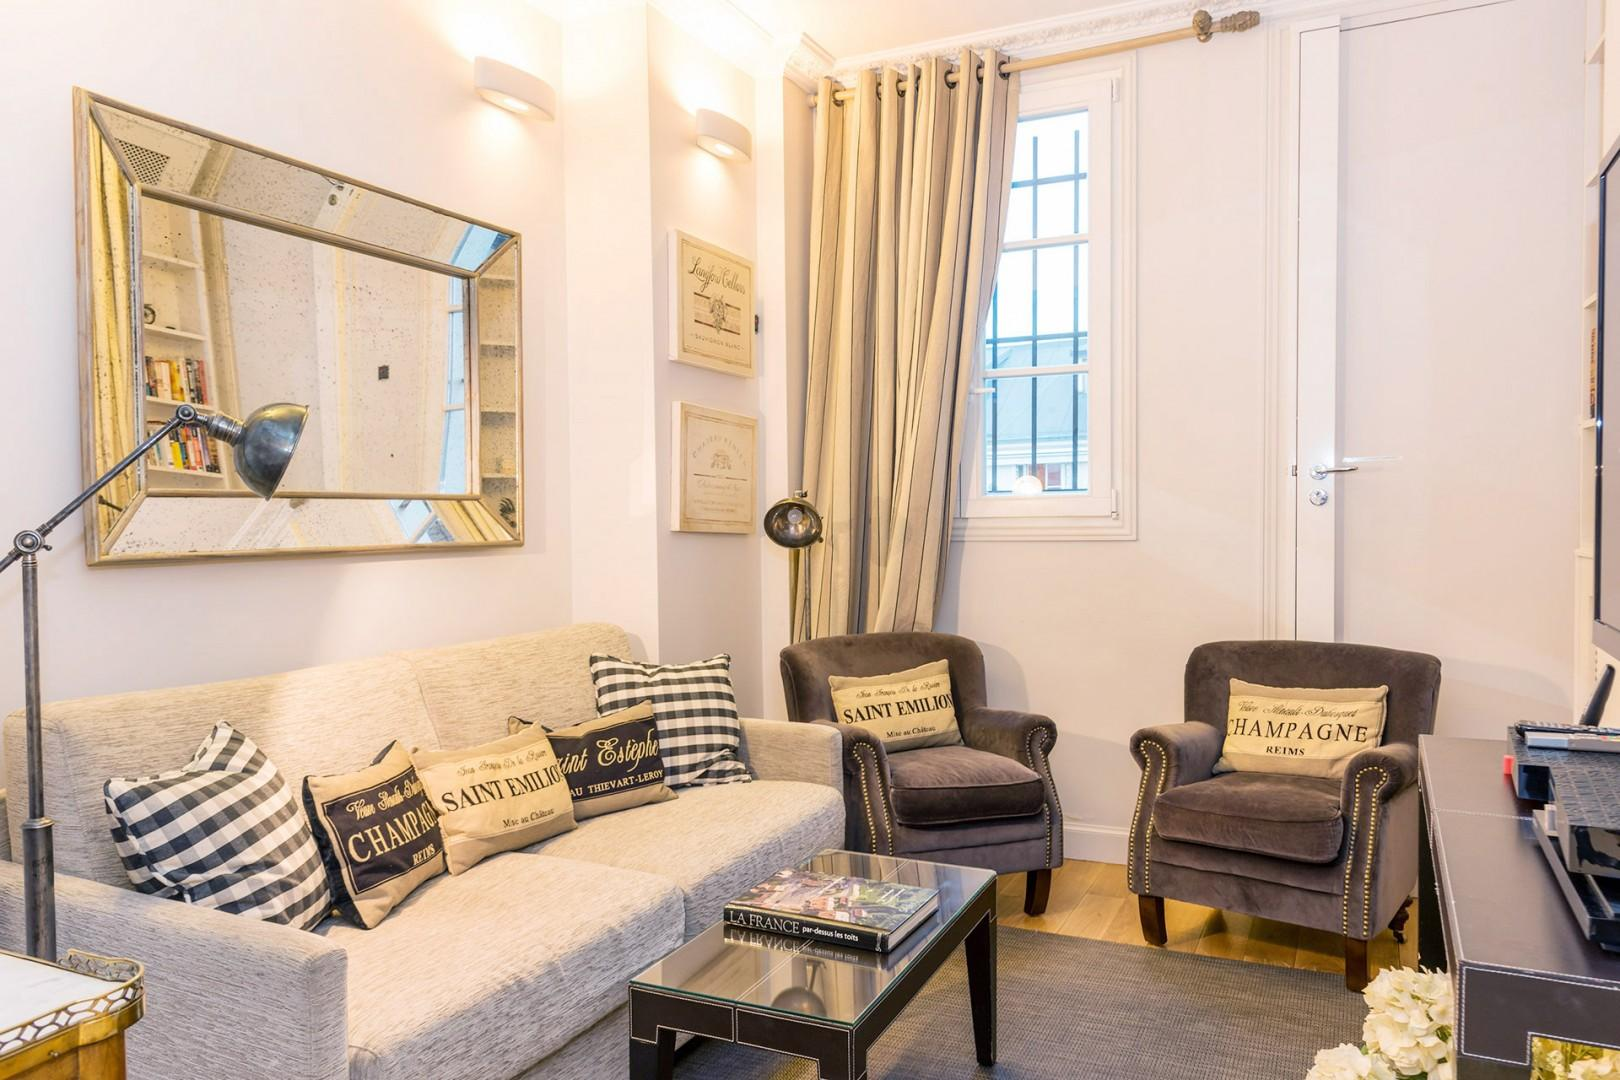 The comfortable sitting room offers plenty of space to relax.